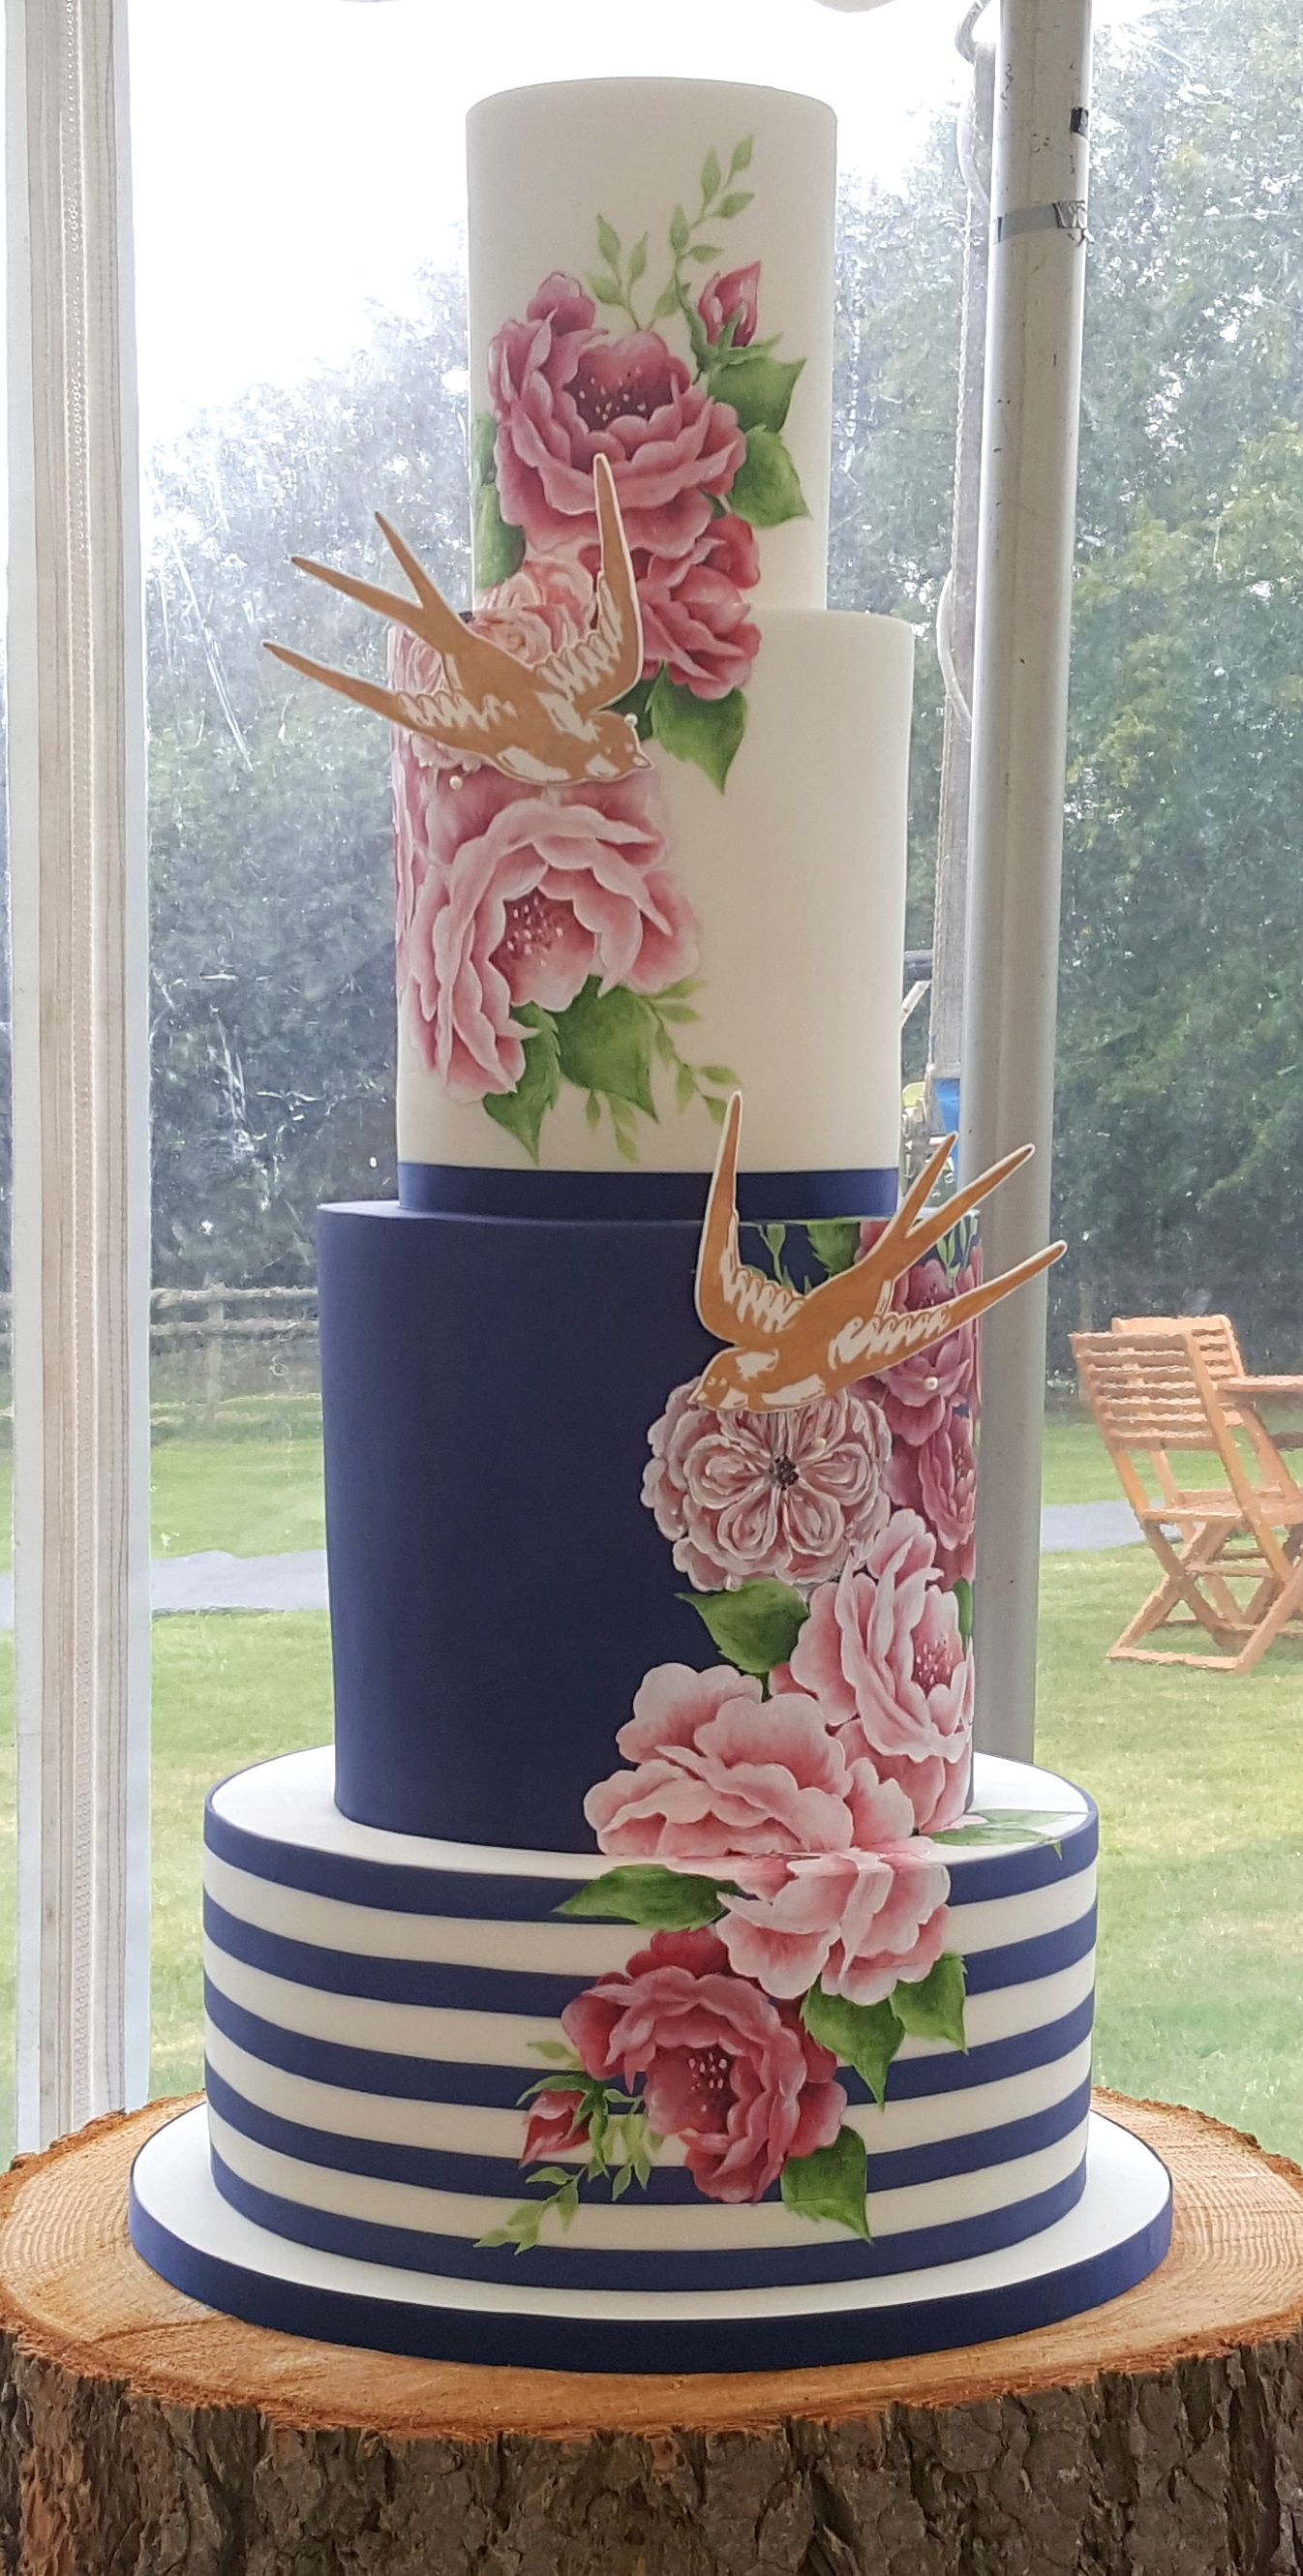 Blue, White, Gold Cake With Pink Roses |Pink And Blue Wedding Cakes